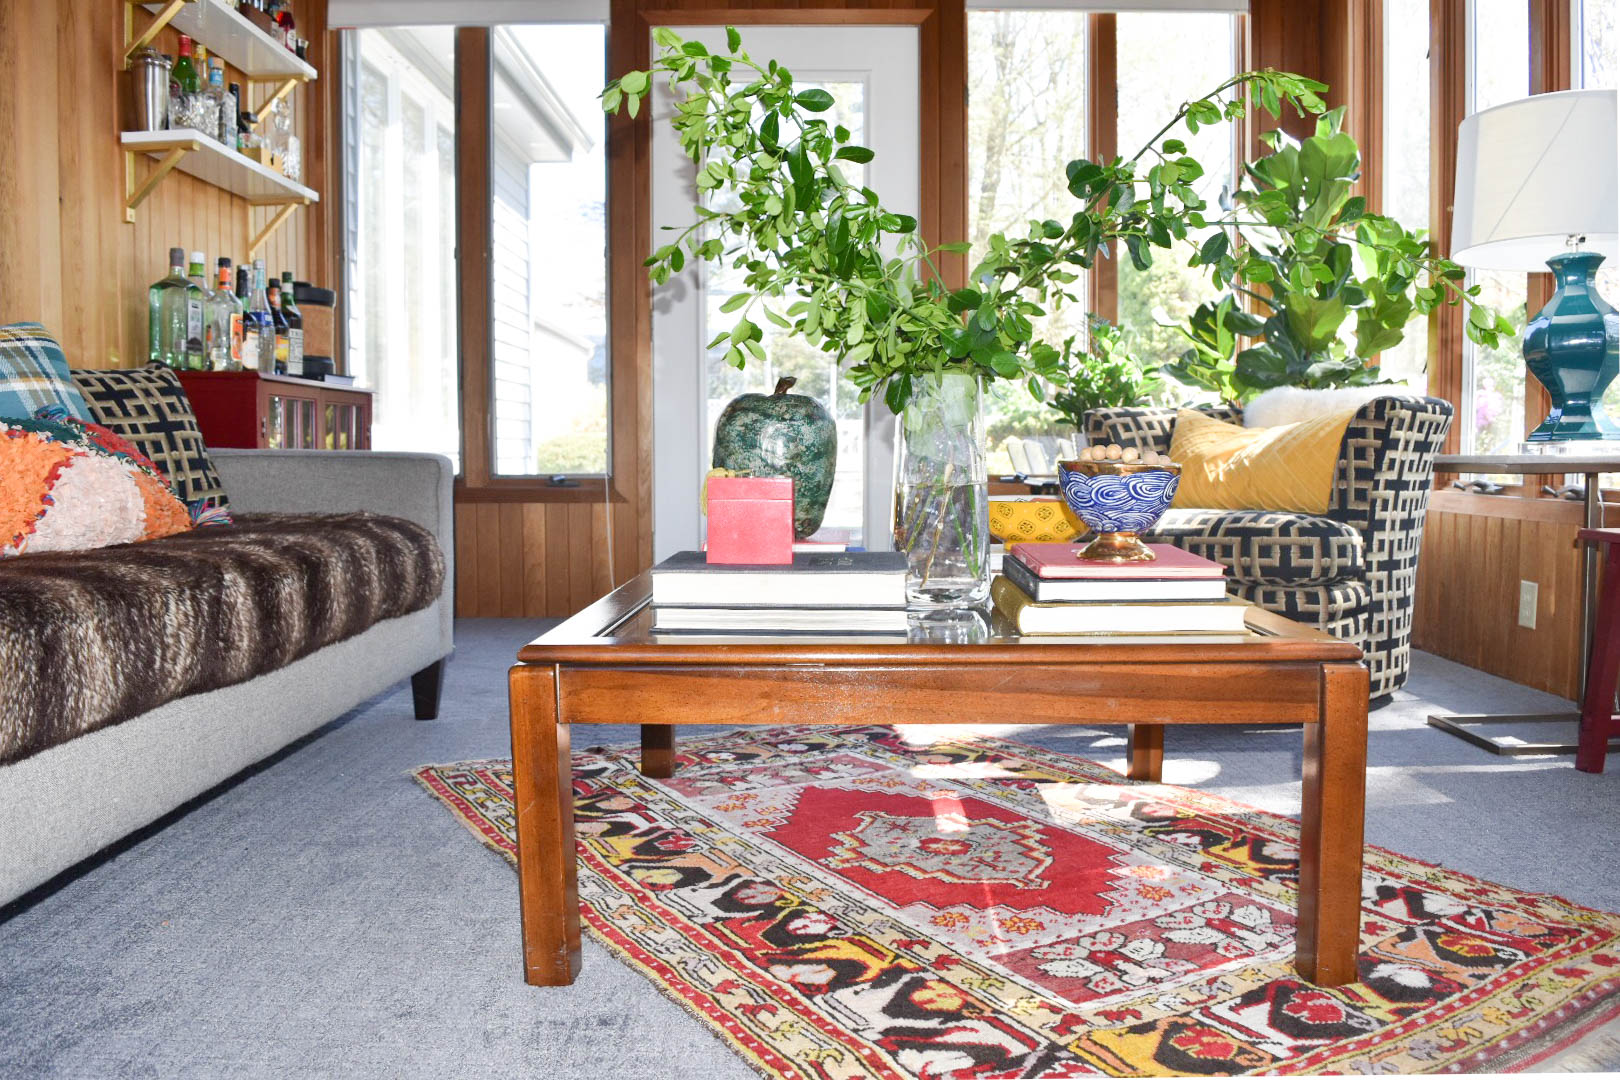 modern eclectic midcentury patterned colorful collected vintage bar sunroom remodel therathproject